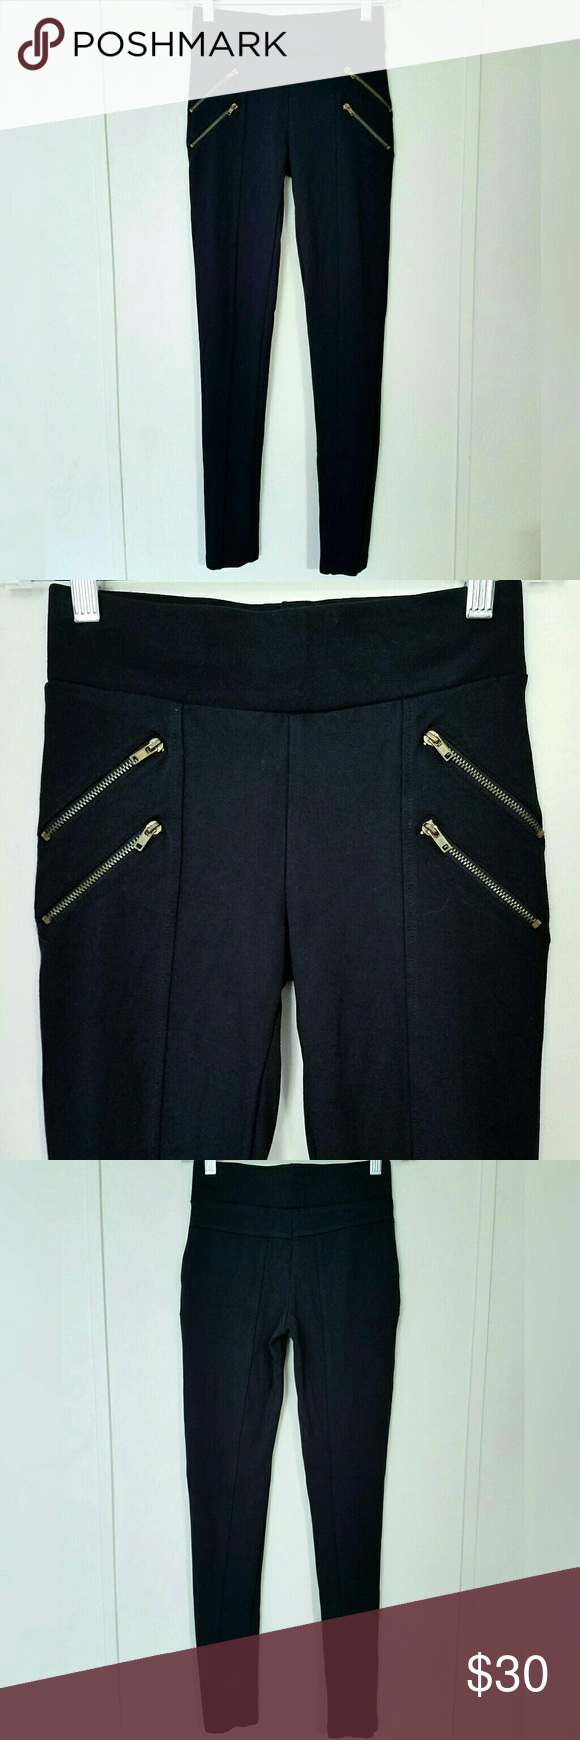 650a6c6d0e8ab Zara Basic Zipper Leggings Zara Basic black paneled leggings with double gold  zippers on each side. Zippers are not actually pockets. Stretchy and comfy!